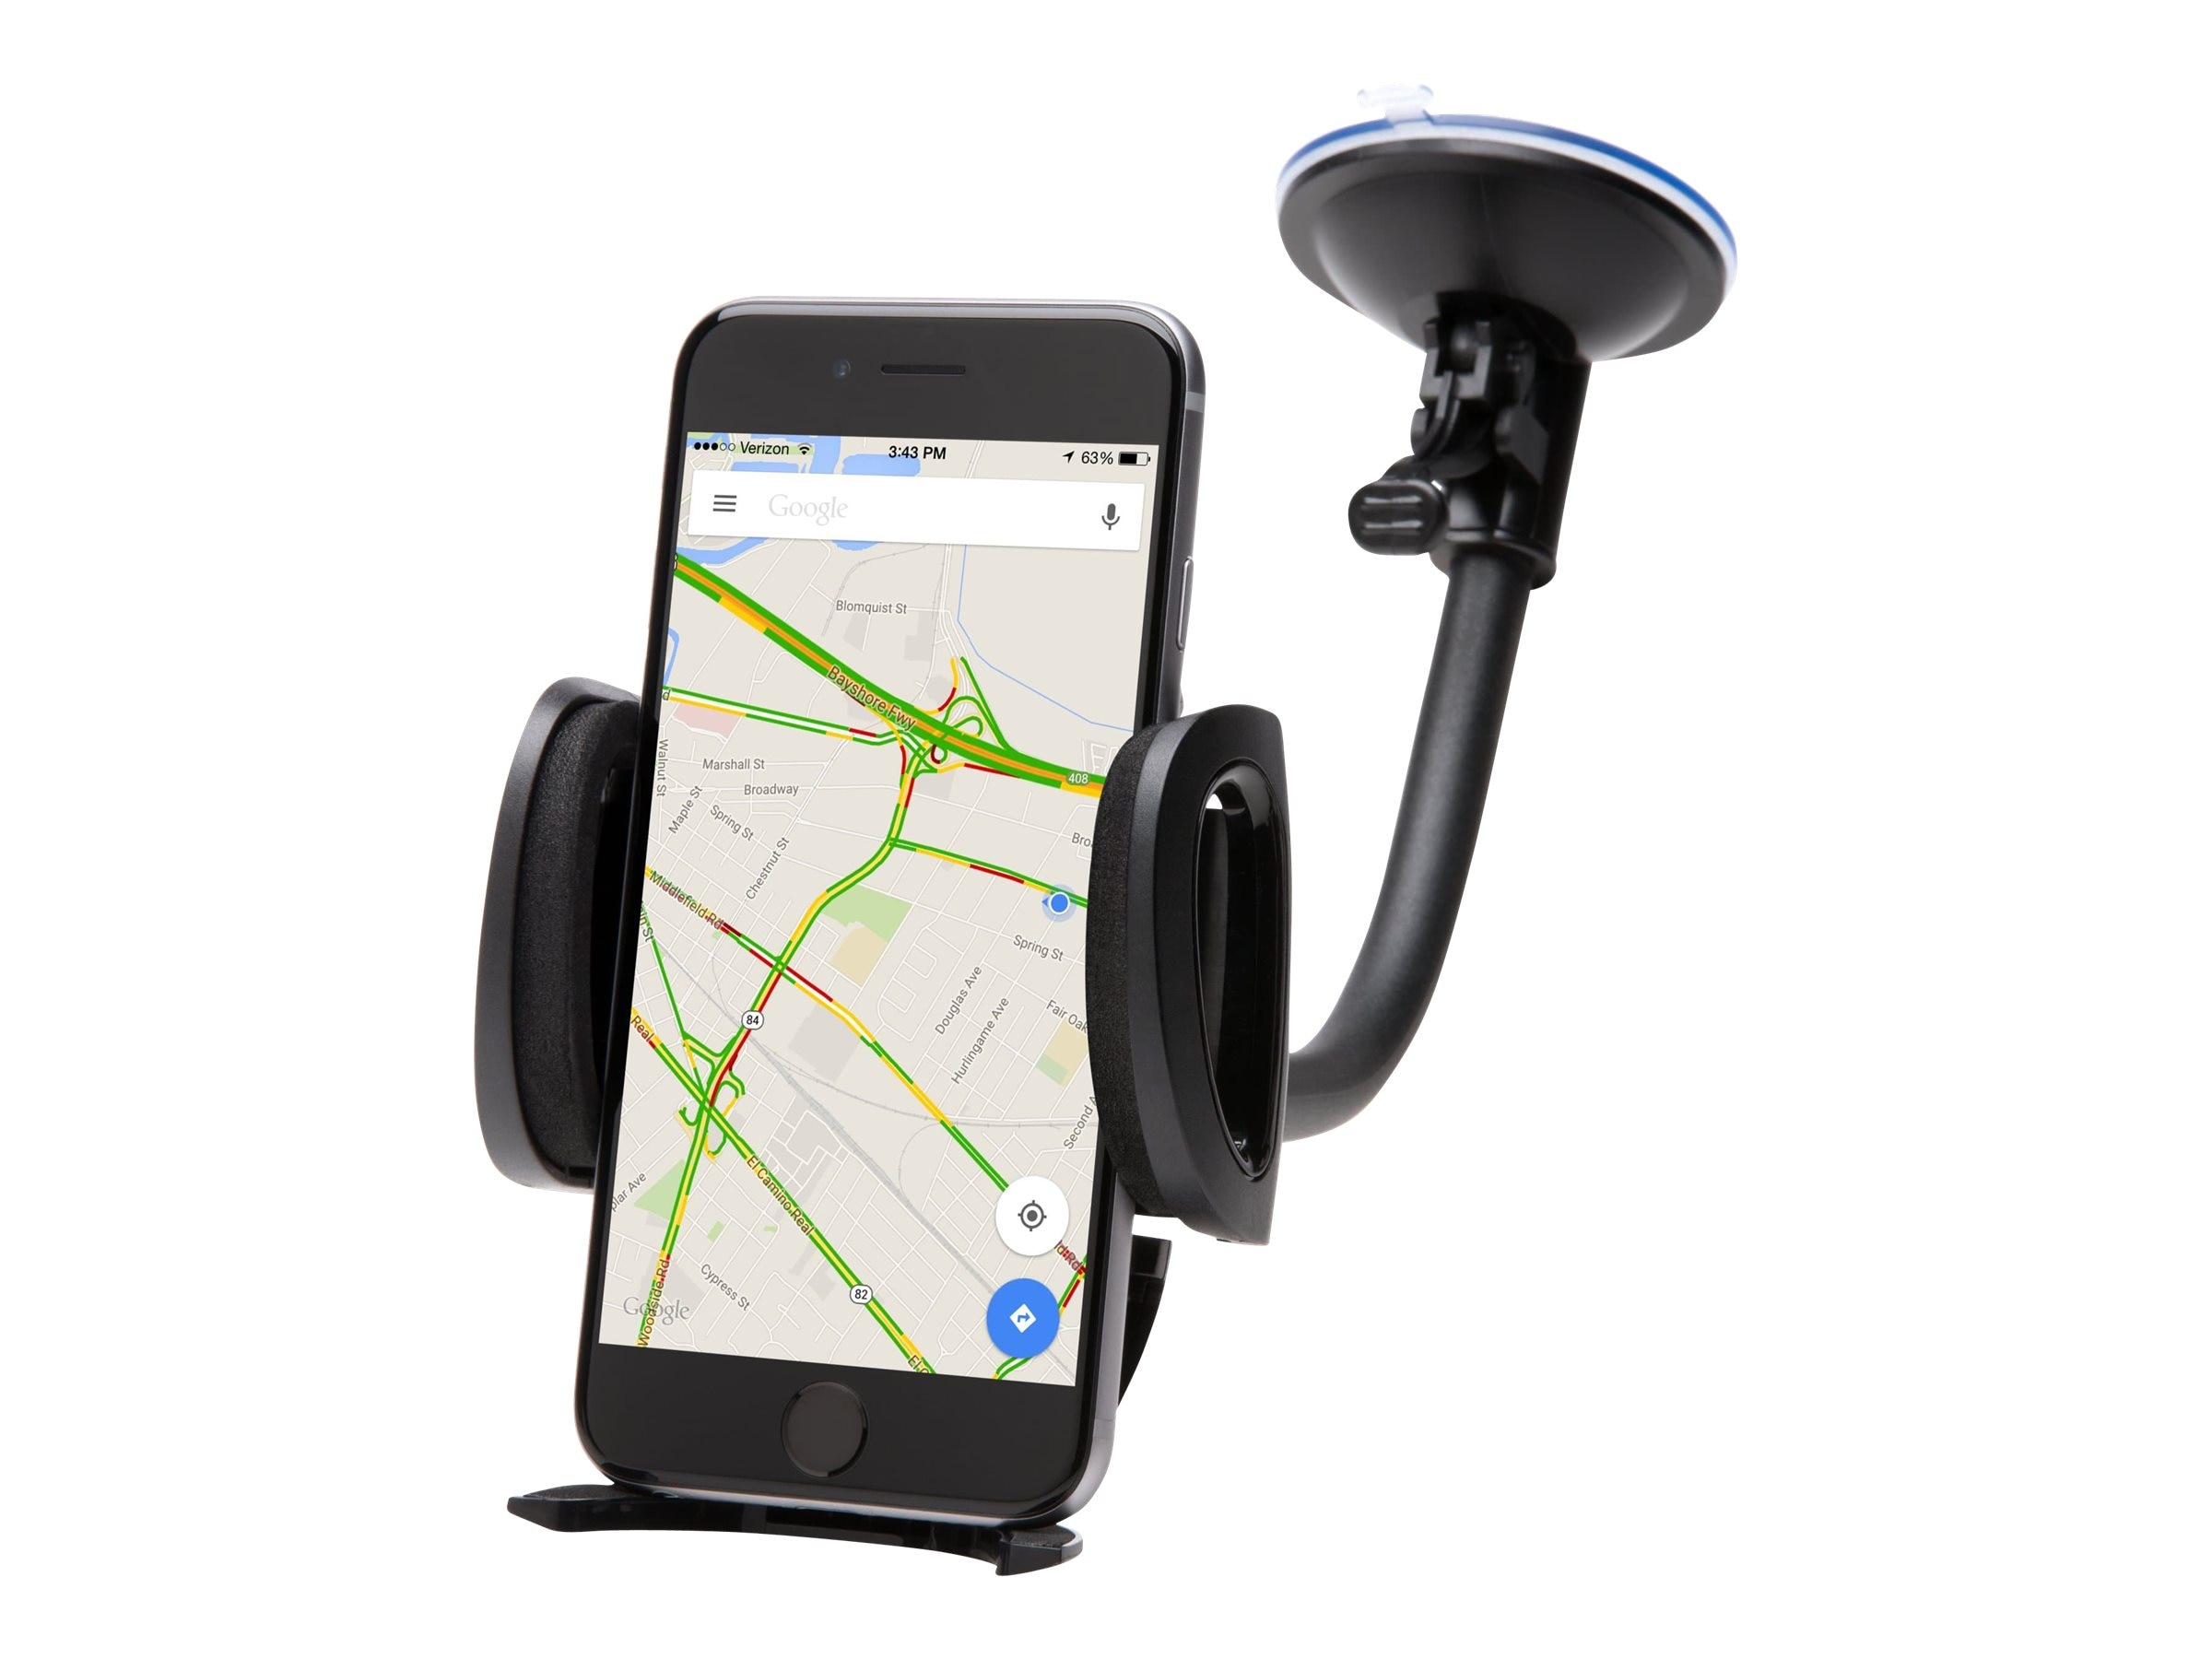 Kensington 3.74 Universal Car Mount, Black